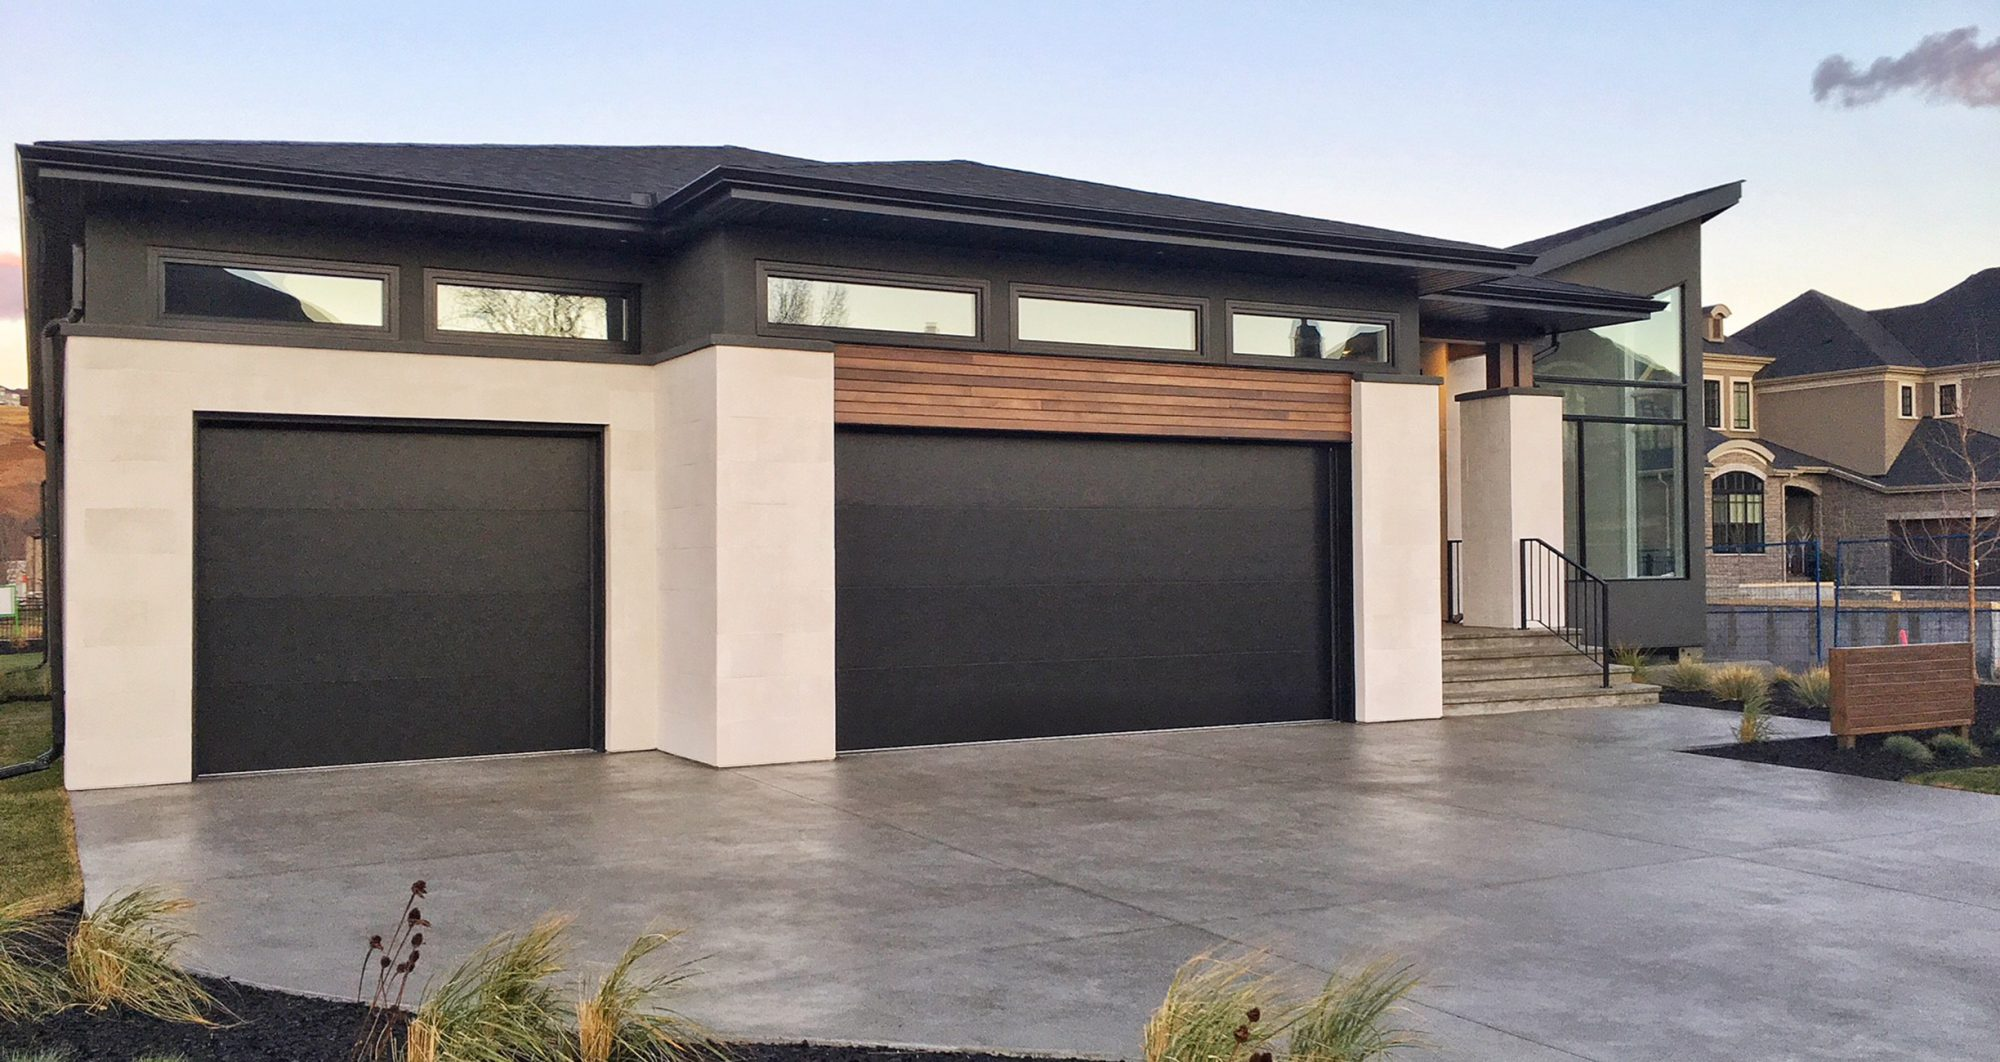 A Detailed Overview of Garage Door & Its Components